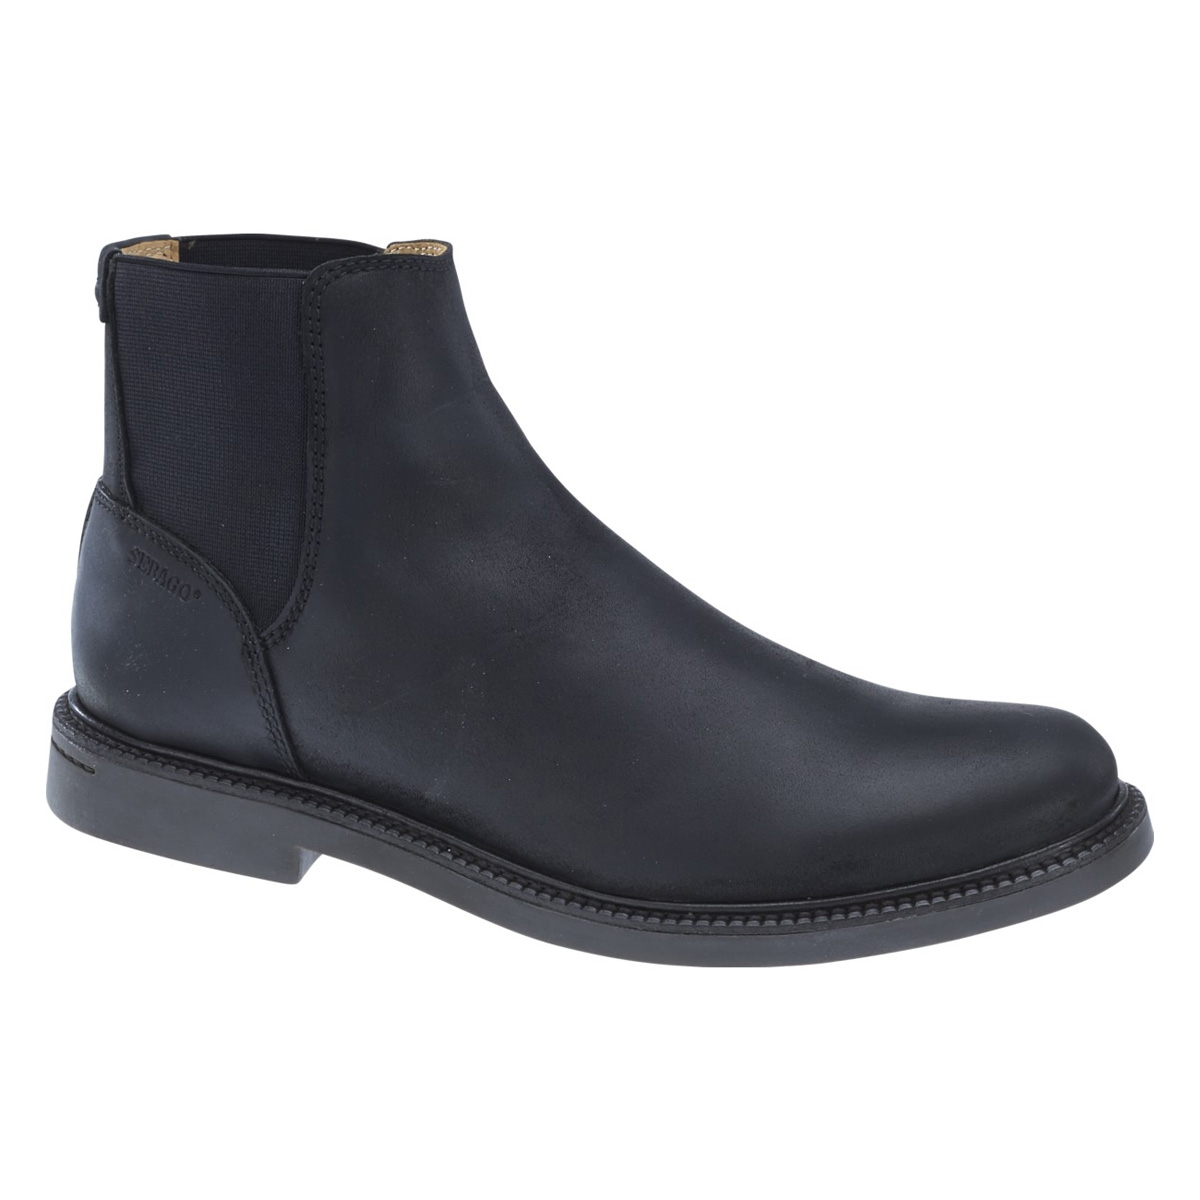 Image of Sebago Turner Chelsea WP Casual Boots (Men's) - Black Leather